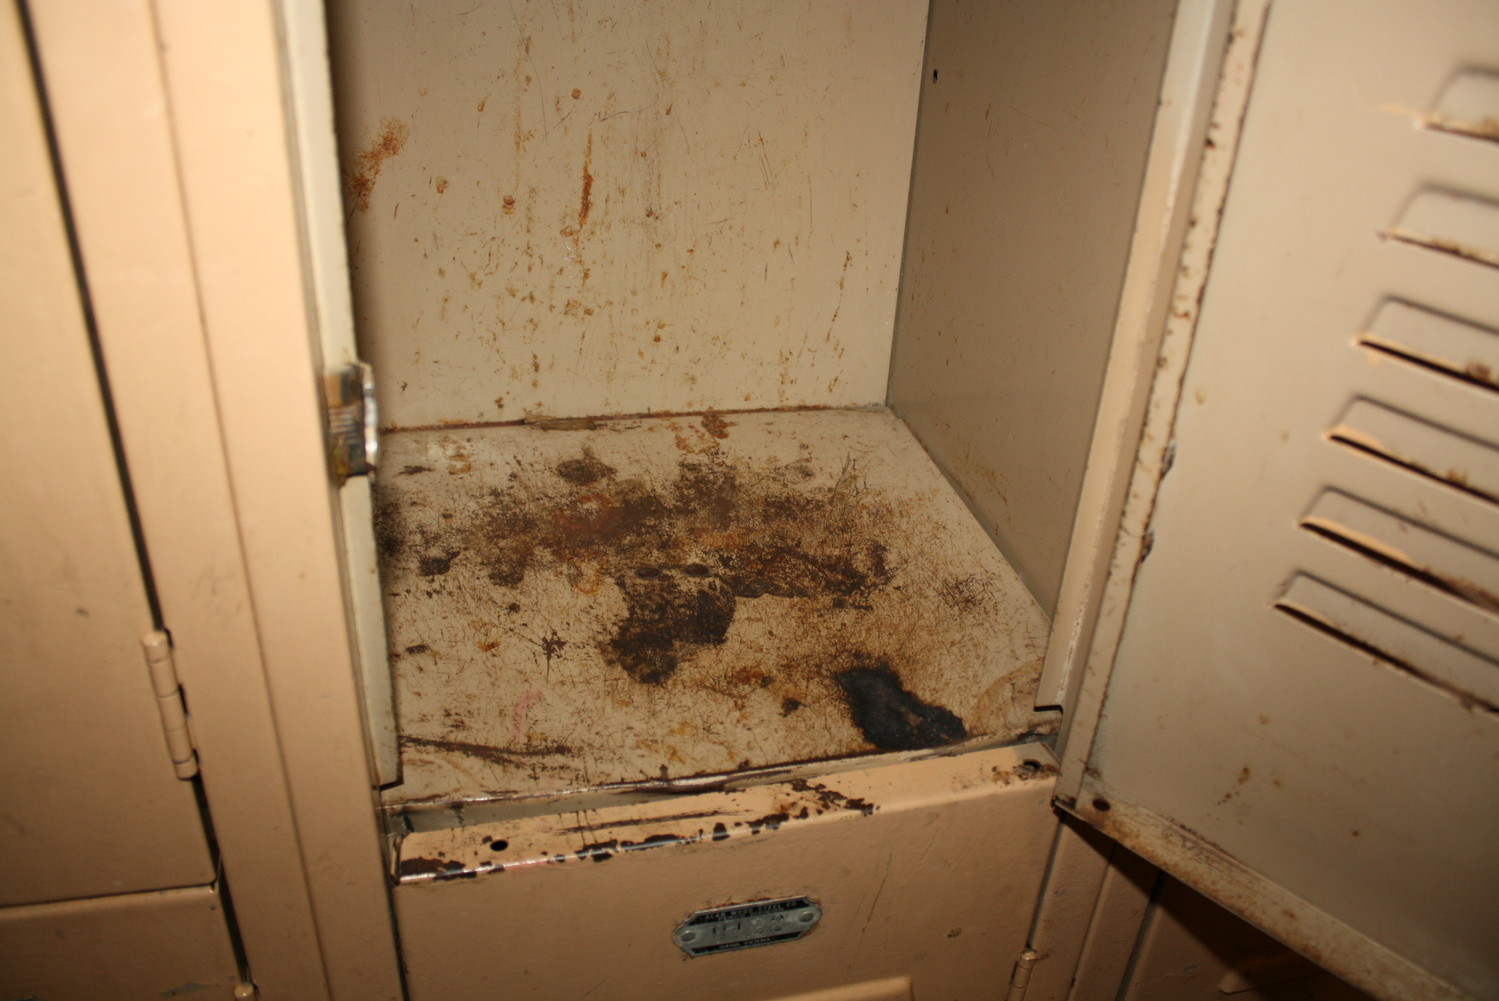 Lockers in many of the buildings, including this one at Lynbrook North Middle School, are outdated and rusty.